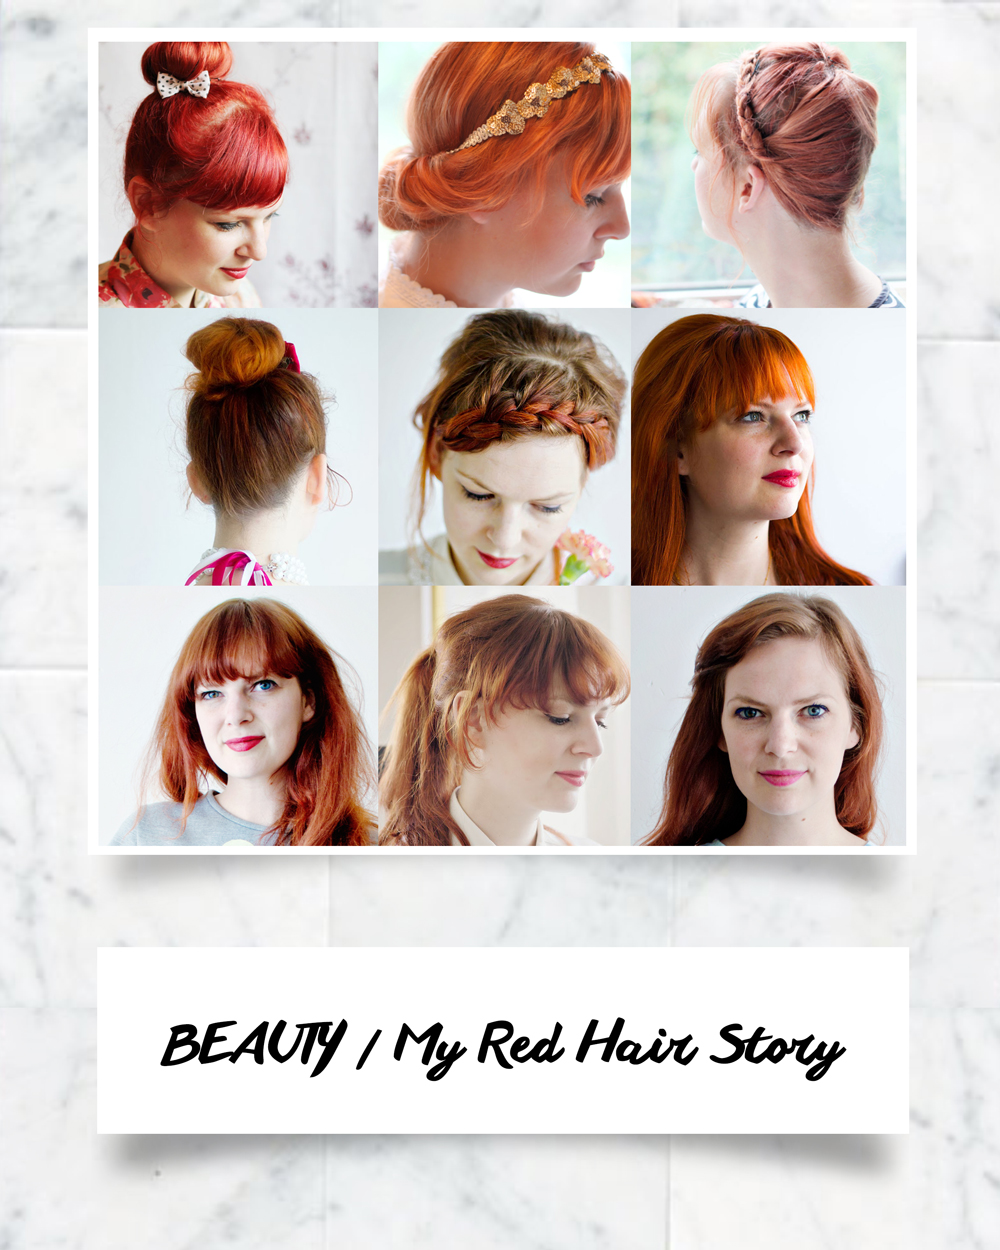 BEAUTY Going For Red Hair Tips